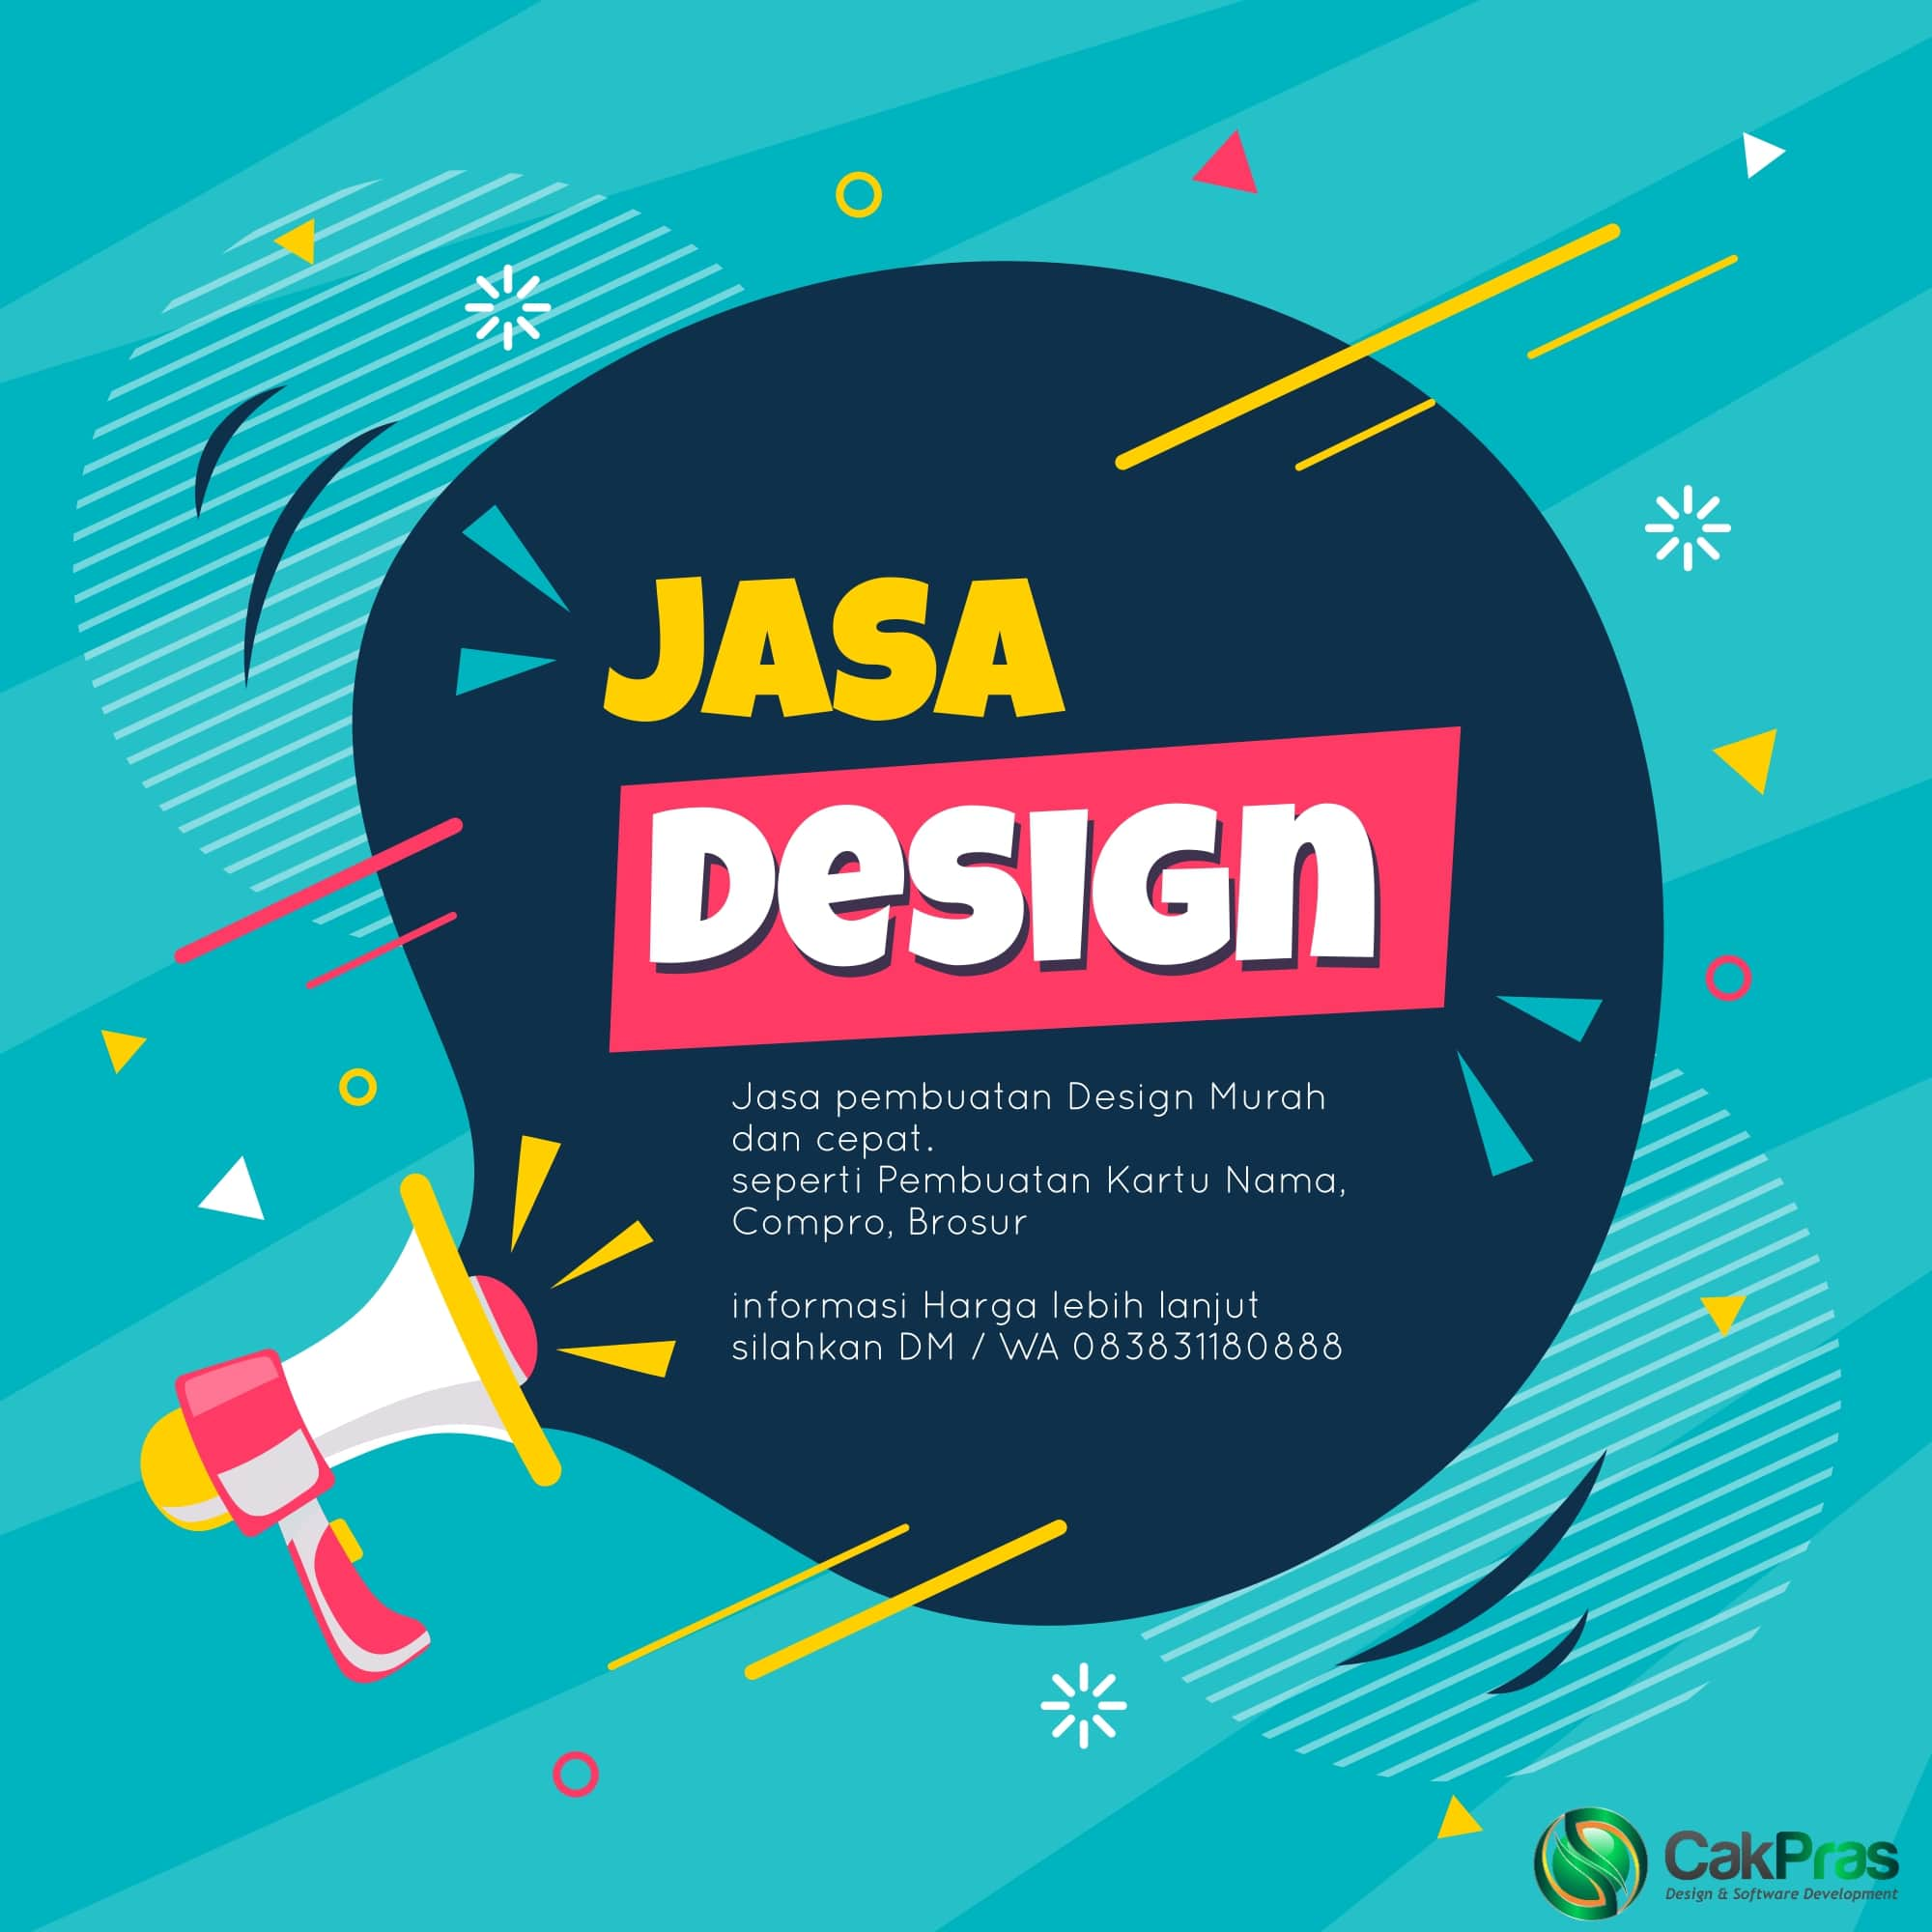 Jasa Design Murah Surabaya - CakPras Digital Marketing - Jasa